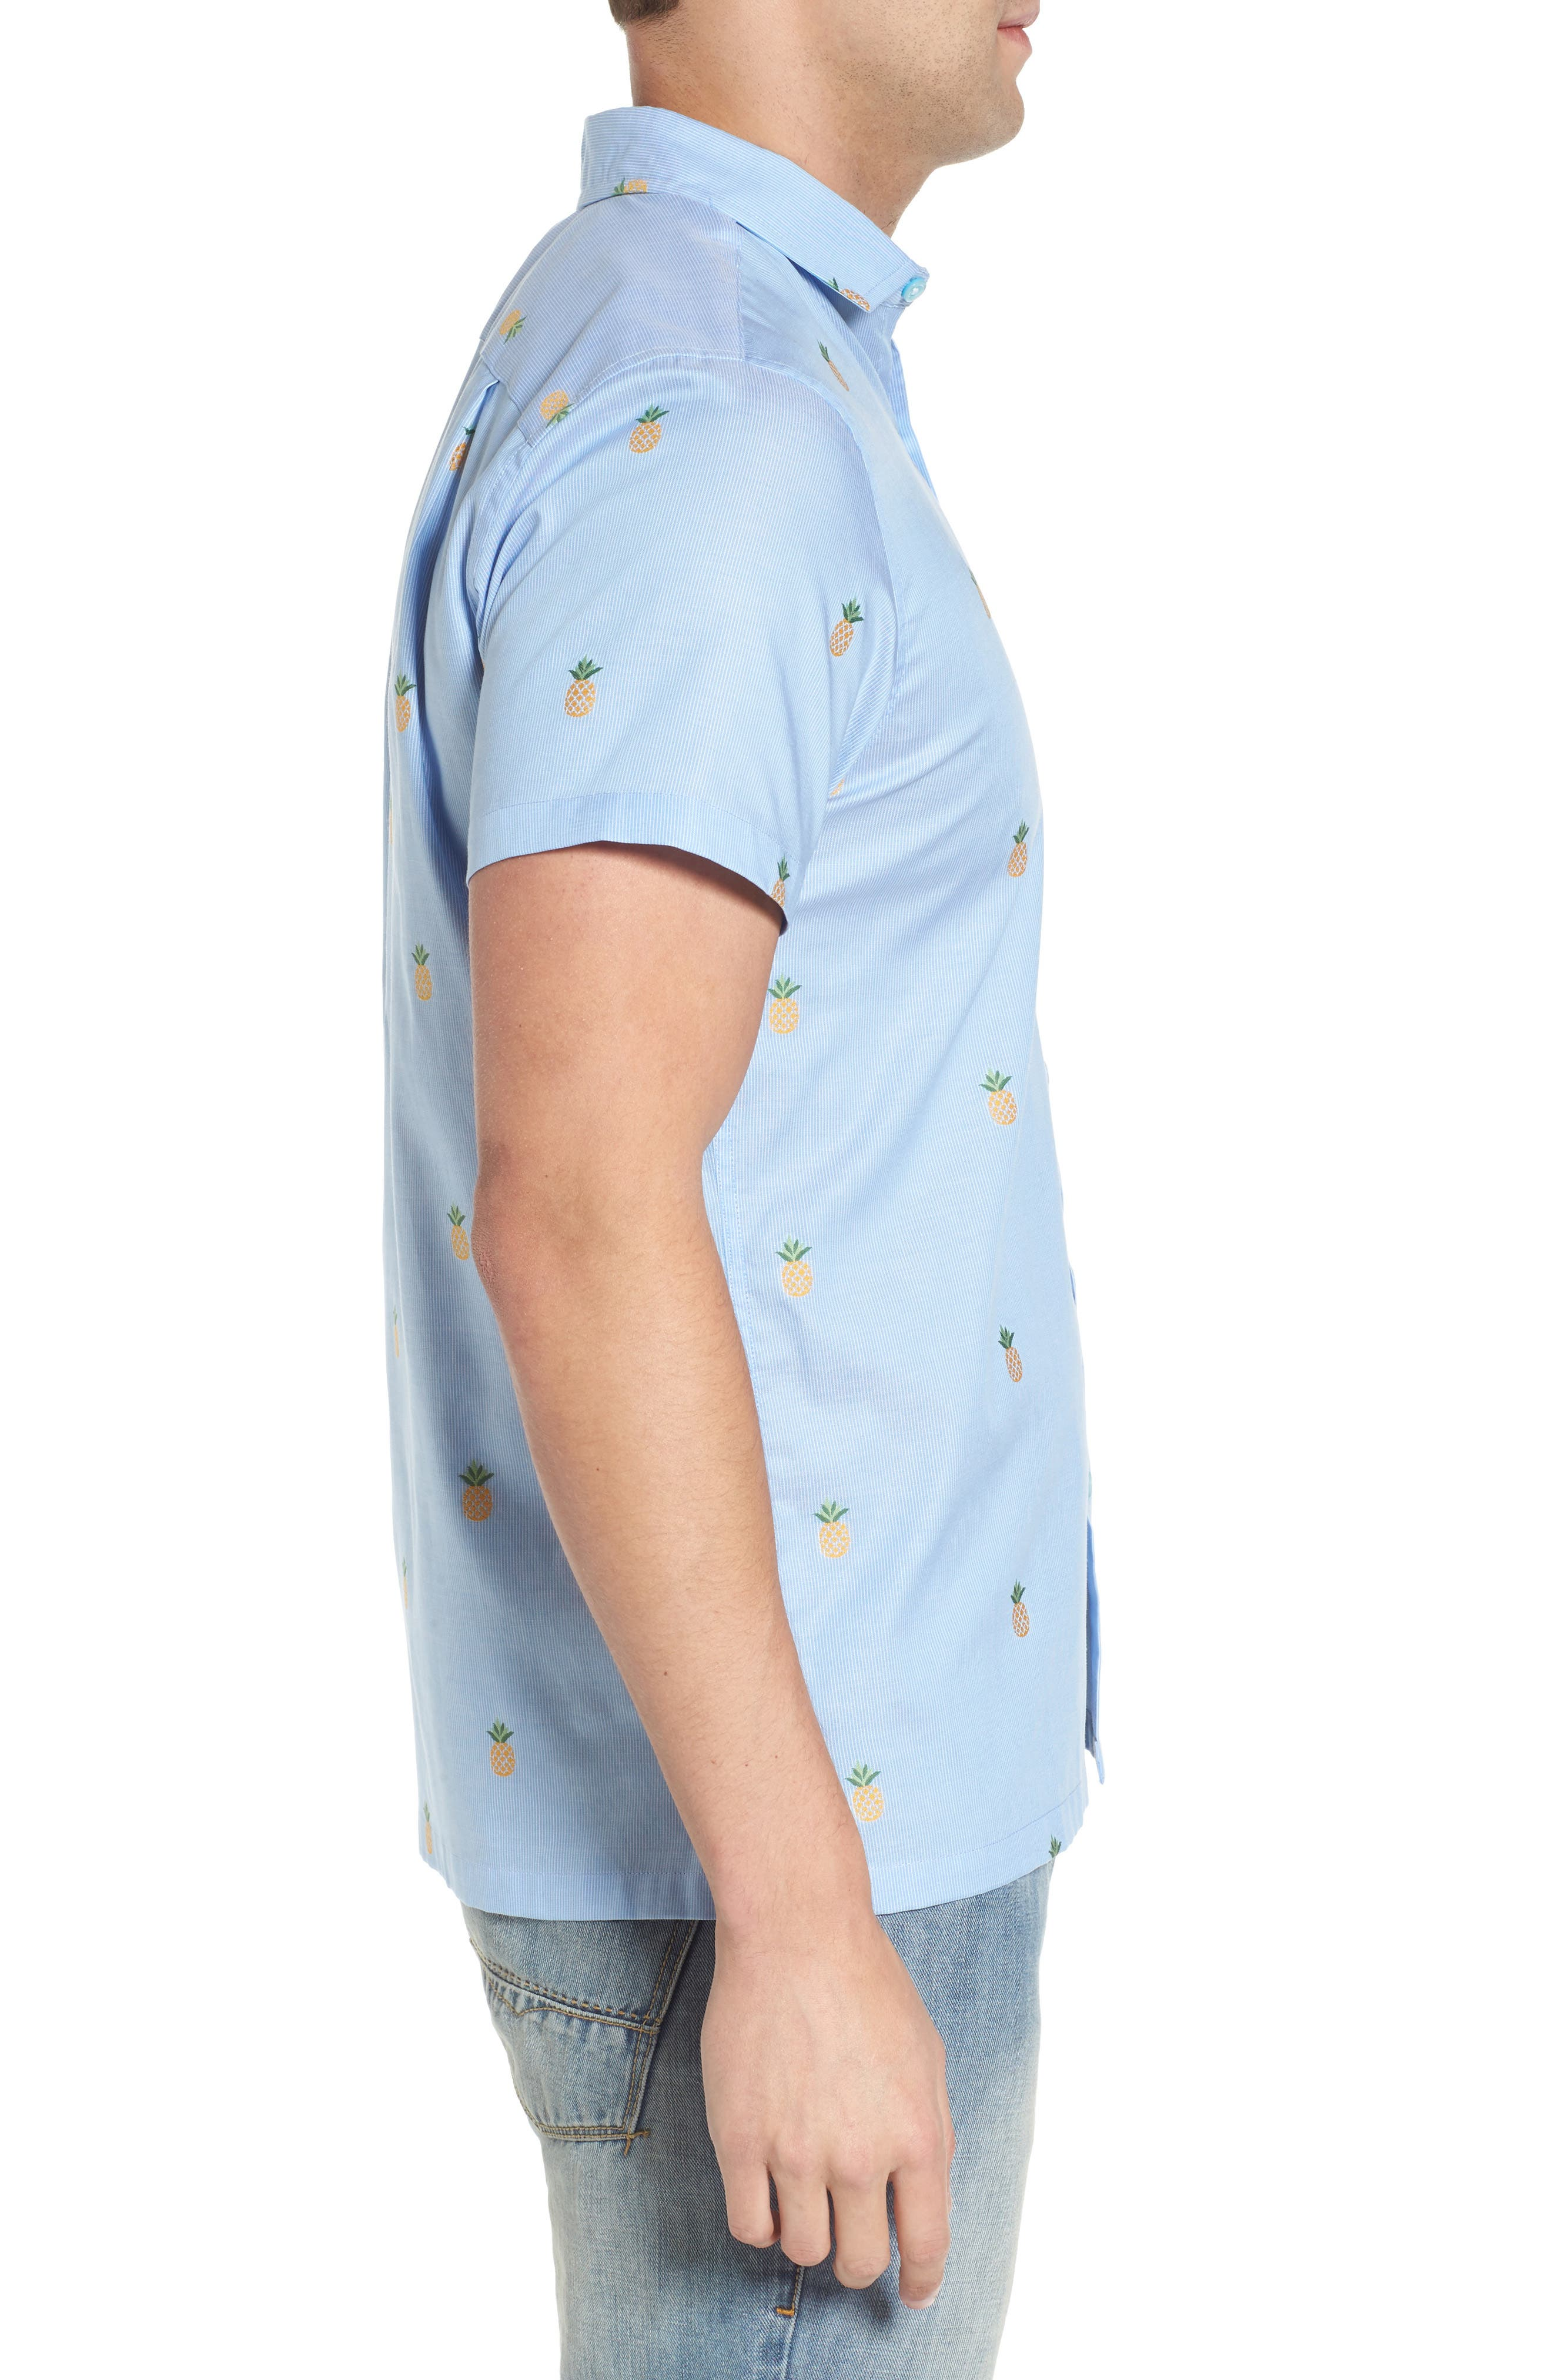 Dole 'N' Row Trim Fit Embroidered Sport Shirt,                             Alternate thumbnail 3, color,                             Blue